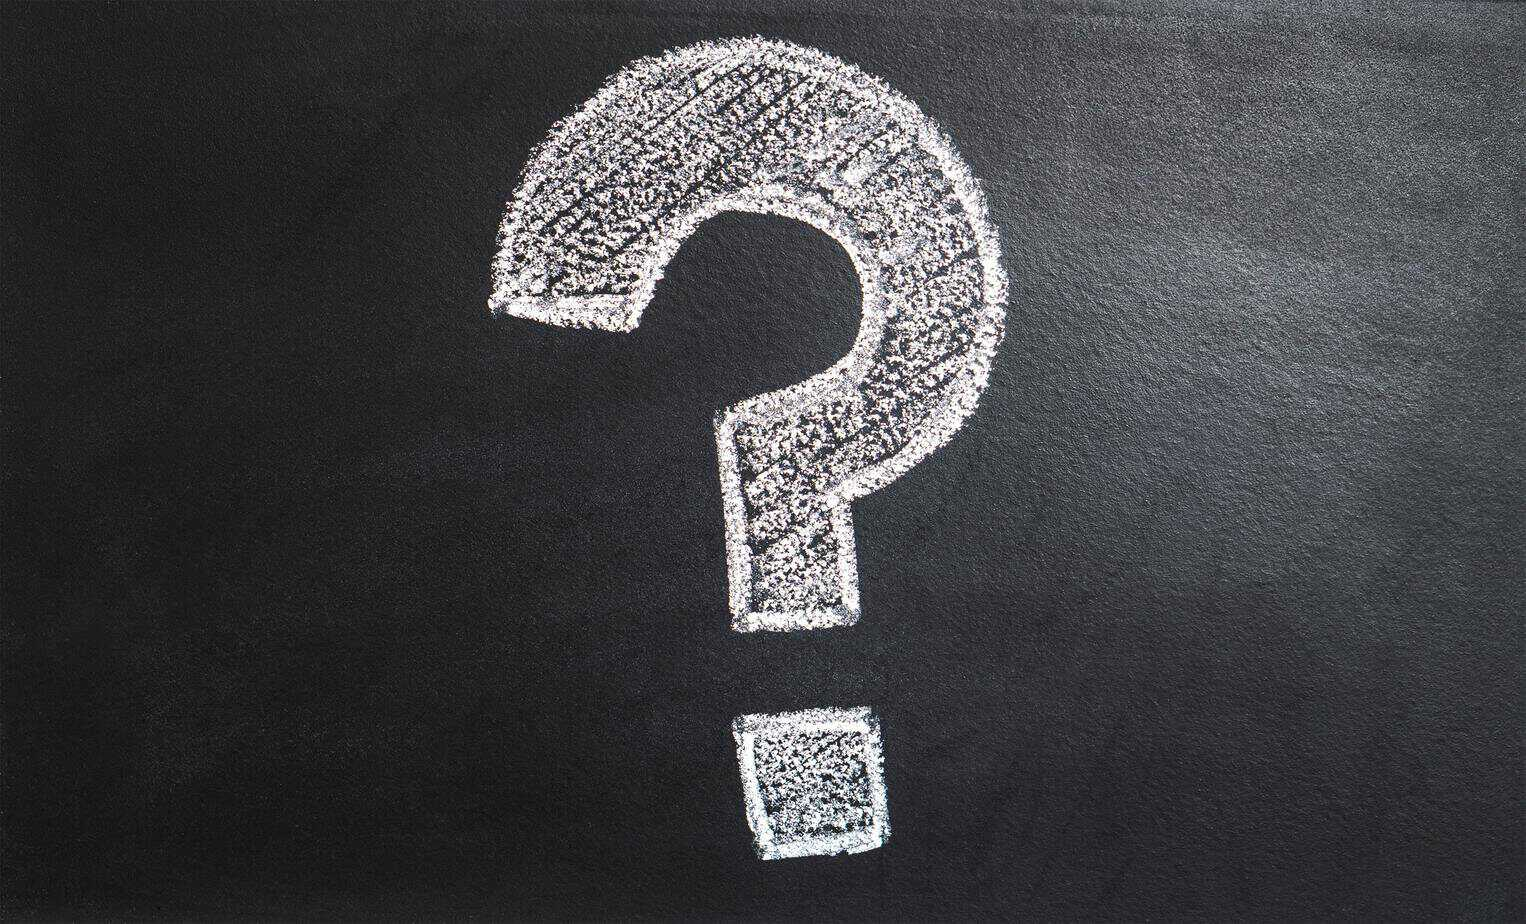 7 Digital Marketing Questions Every Business Owner Should Be Asking